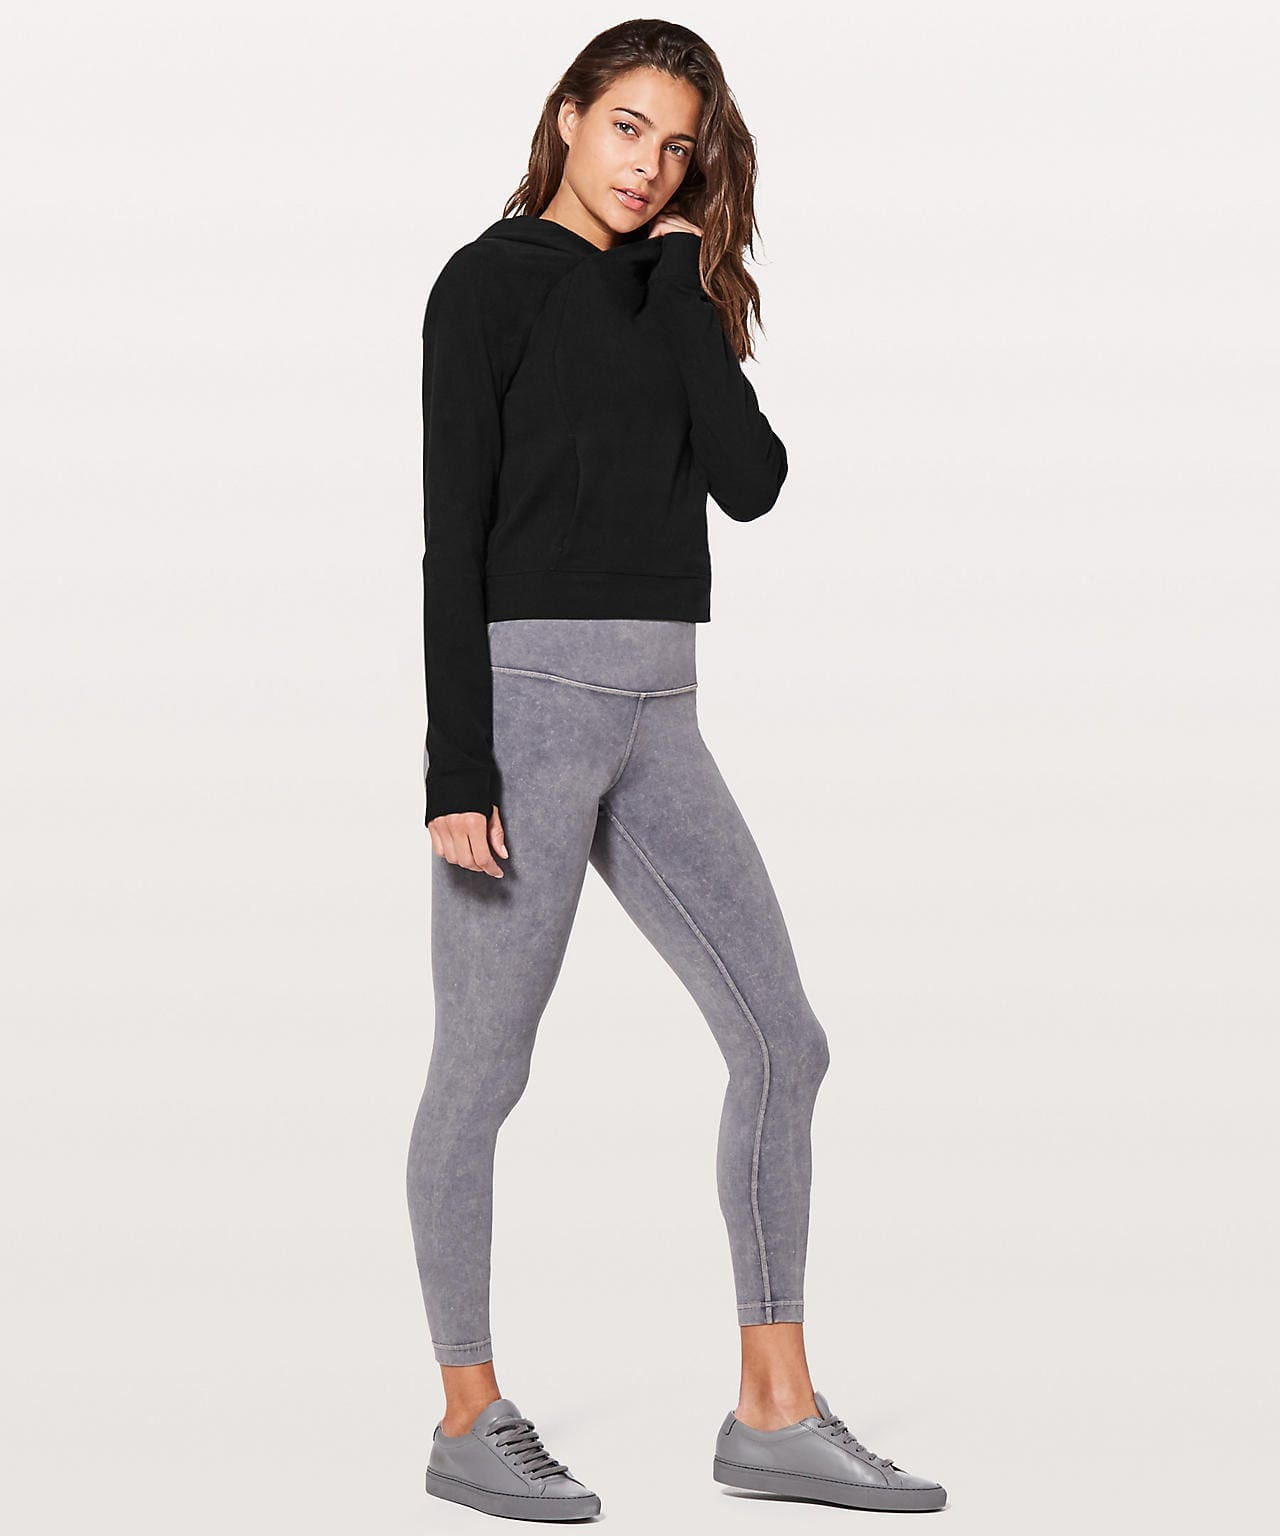 Lululemon Nice & Natural Popover